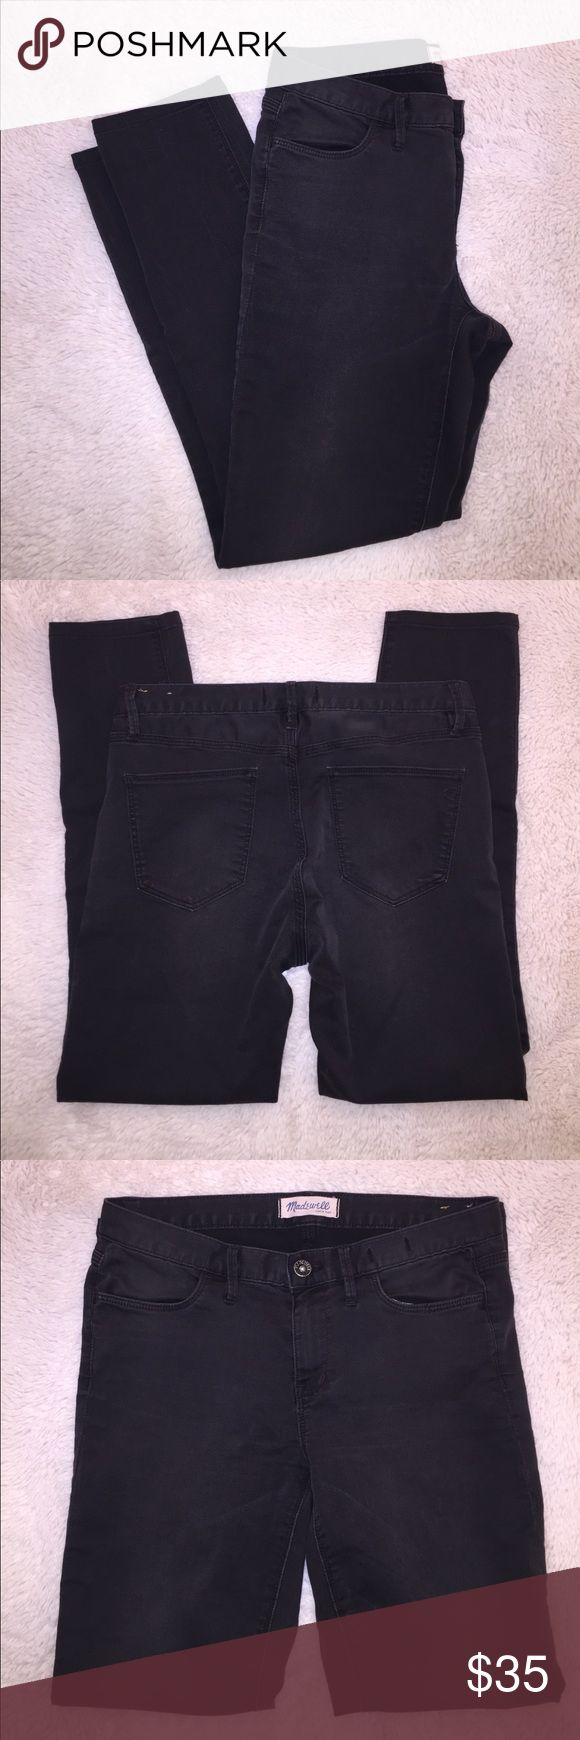 Madewell size 28 dark grey jeans Size 28 Madewell jeans in dark grey wash. Almost black. Only worn once, near perfect condition. Inseam measures 27 inches, perfect for petite ladies! Straight leg fit. Ask all questions prior to purchase •  bundle to save •  willing to consider any reasonable offer  <3 Madewell Jeans Straight Leg